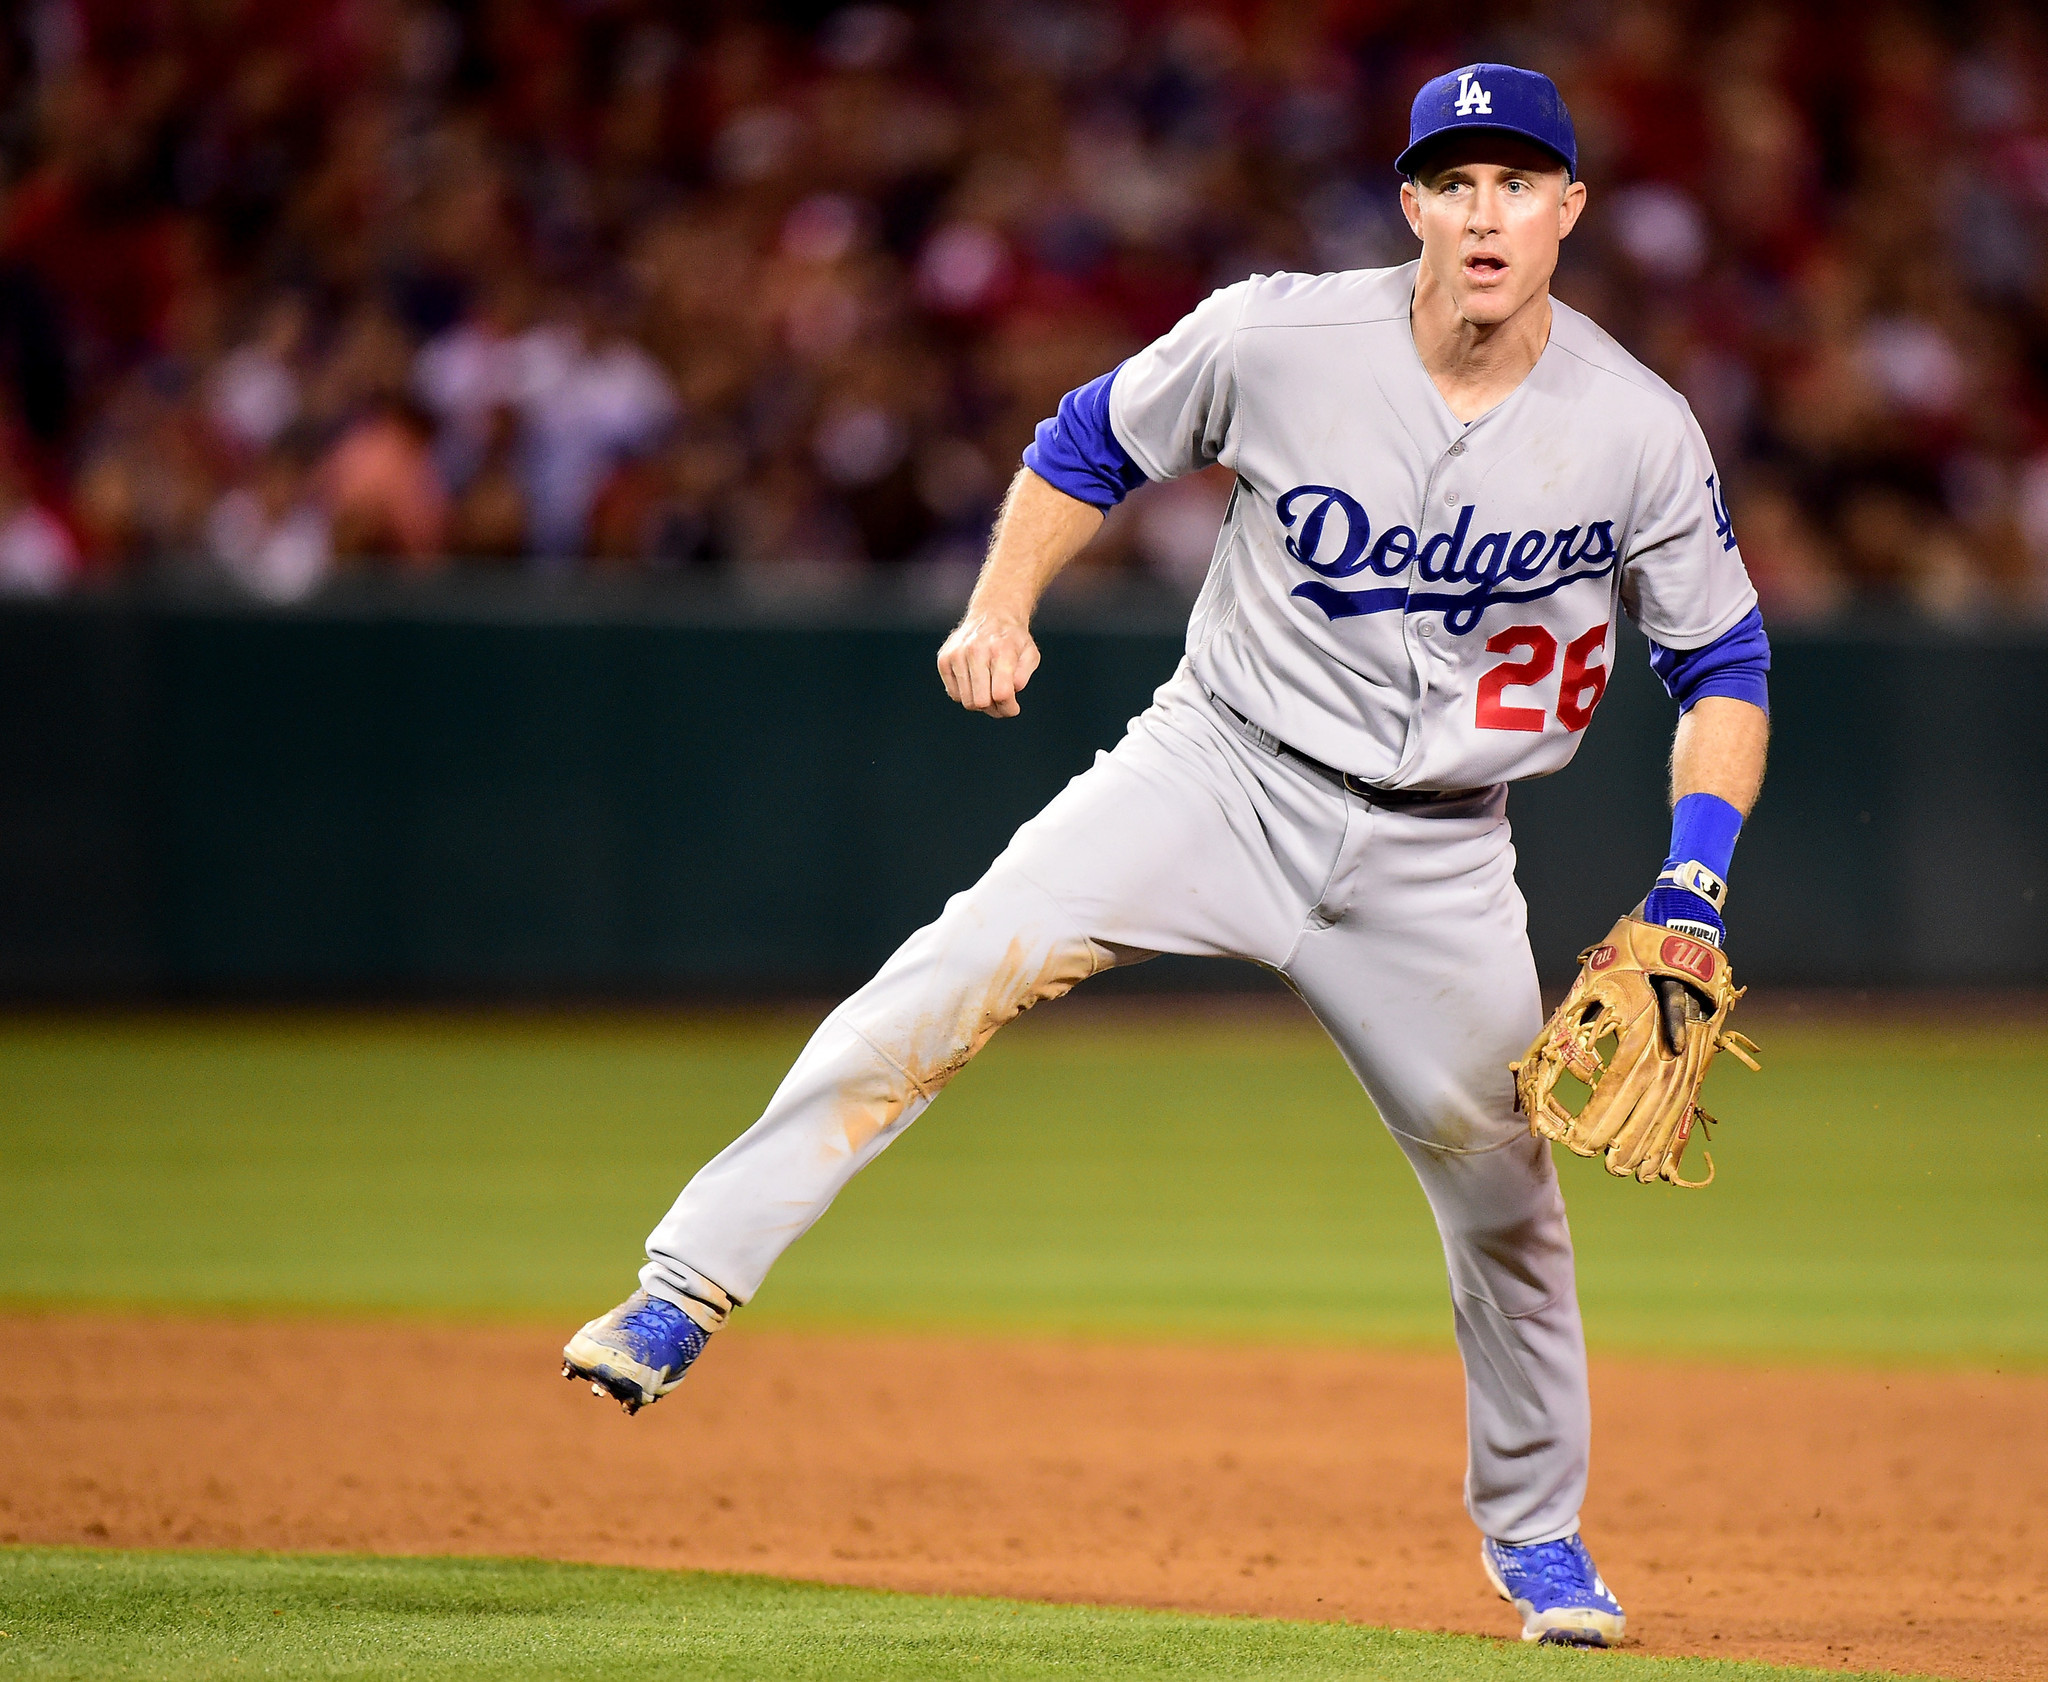 La-sp-dodgers-mailbag-chase-utley-hall-of-fame-20160523